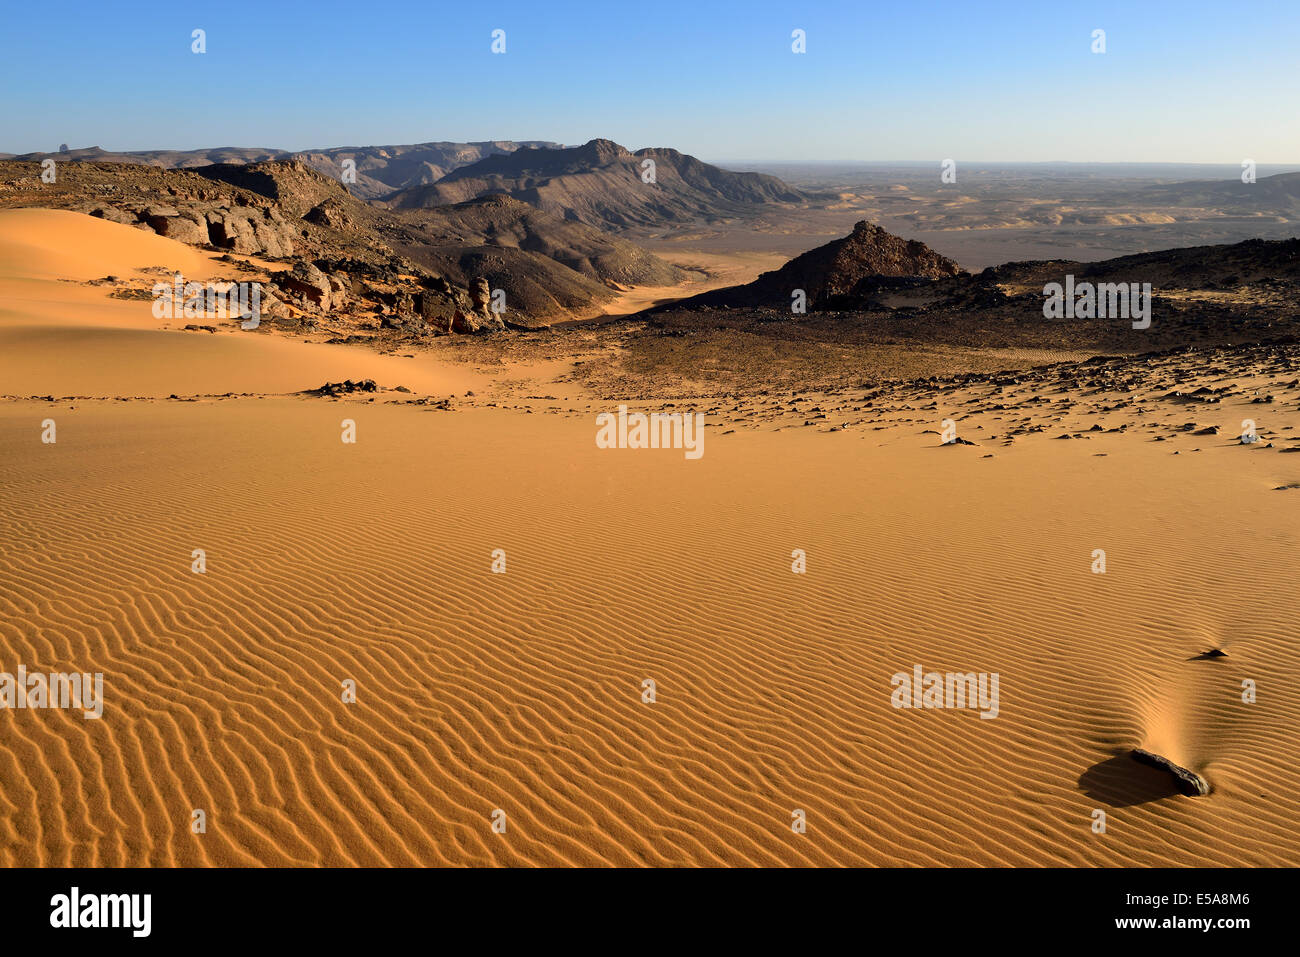 Western escarpment of Tadrart plateau, Tassili n'Ajjer National Park, Unesco World Heritage Site, Sahara desert, - Stock Image